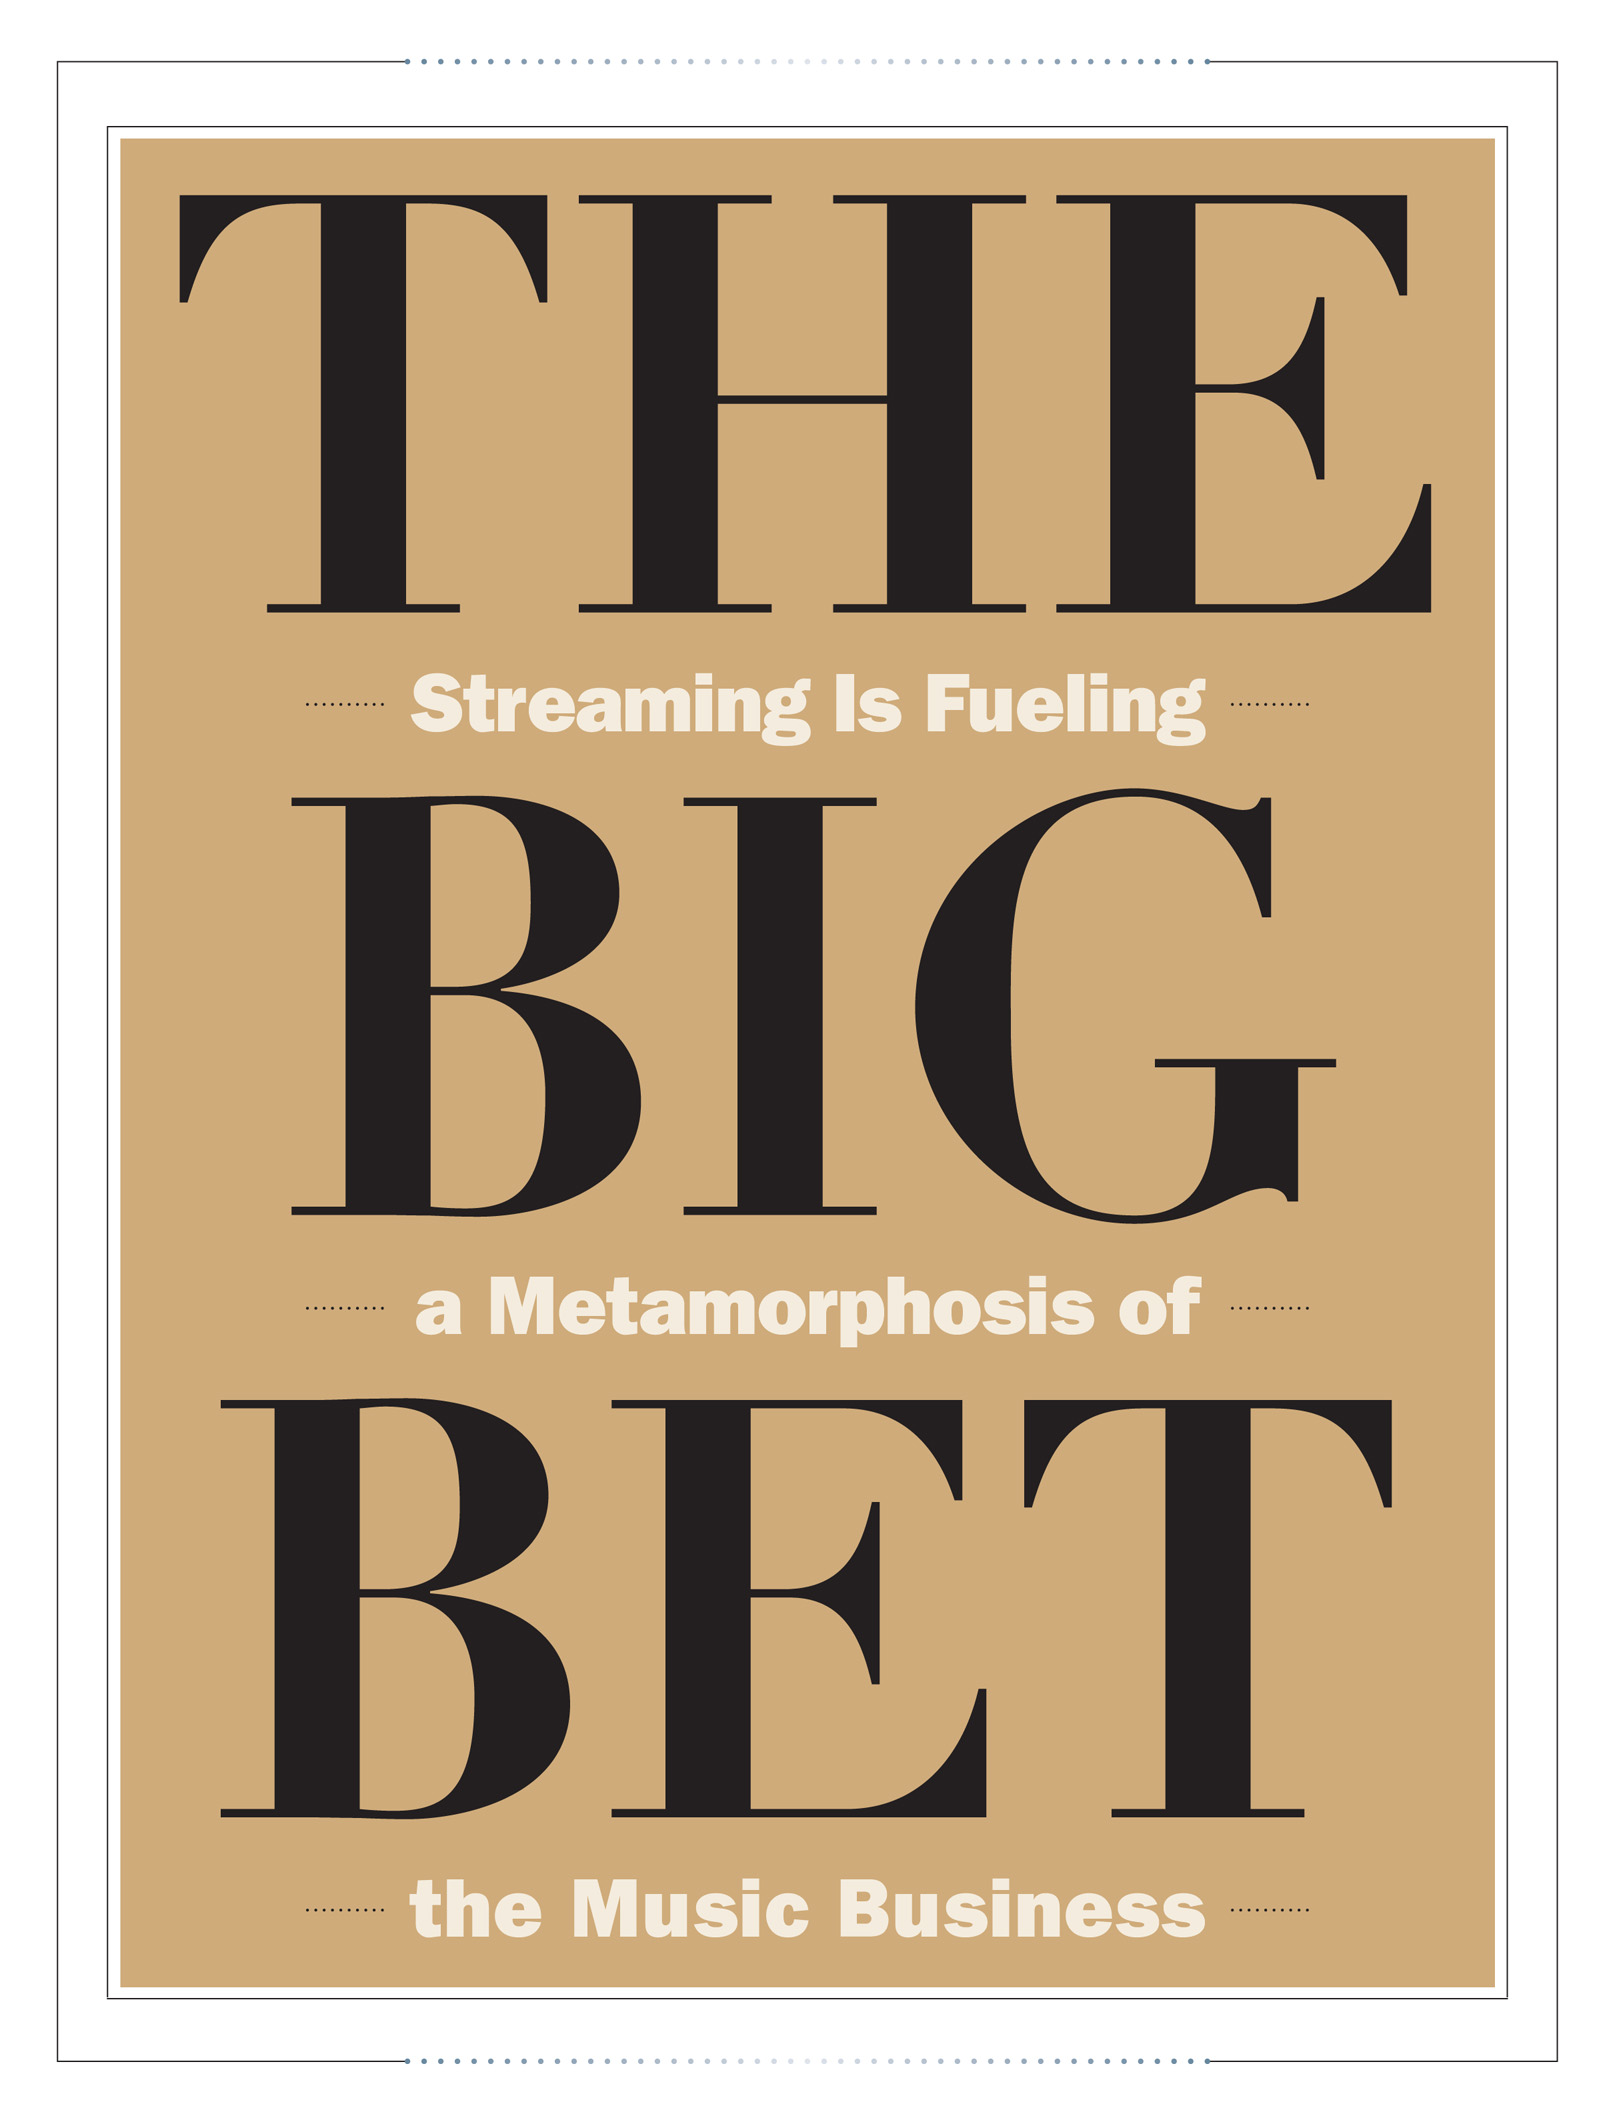 The Big Bet 1222 cover for web